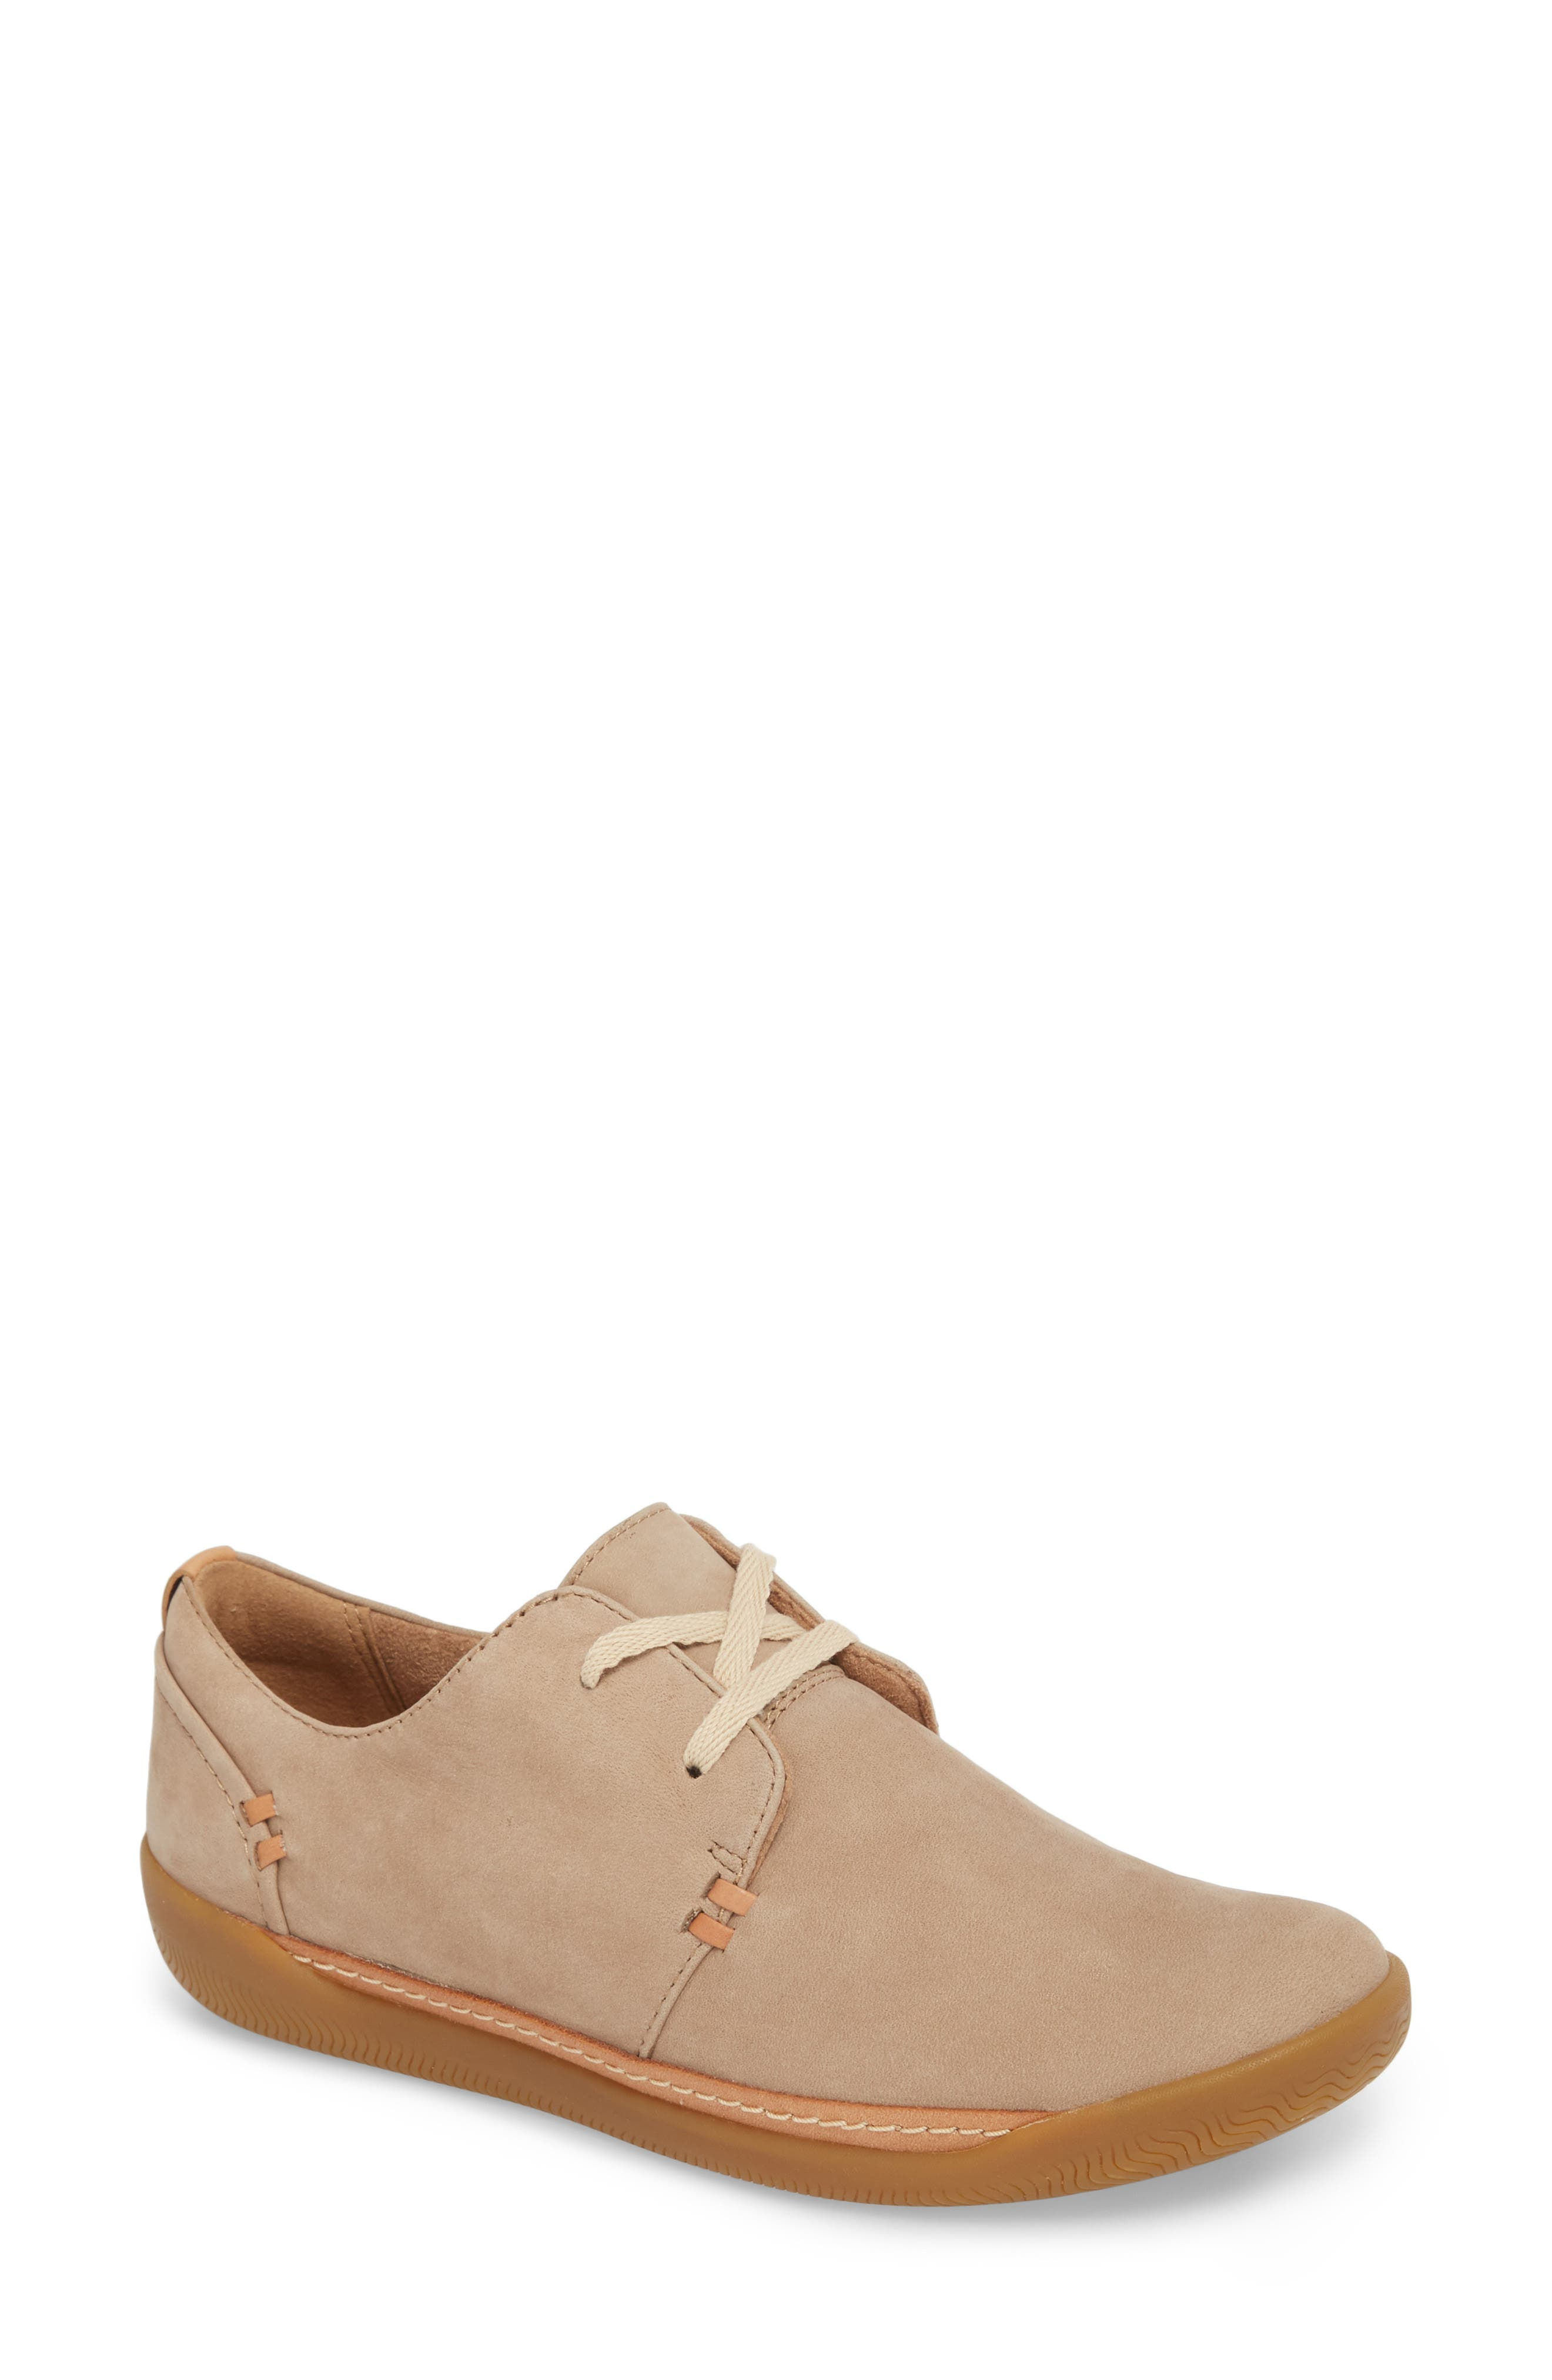 Un Haven Flat,                             Main thumbnail 1, color,                             Sand Nubuck